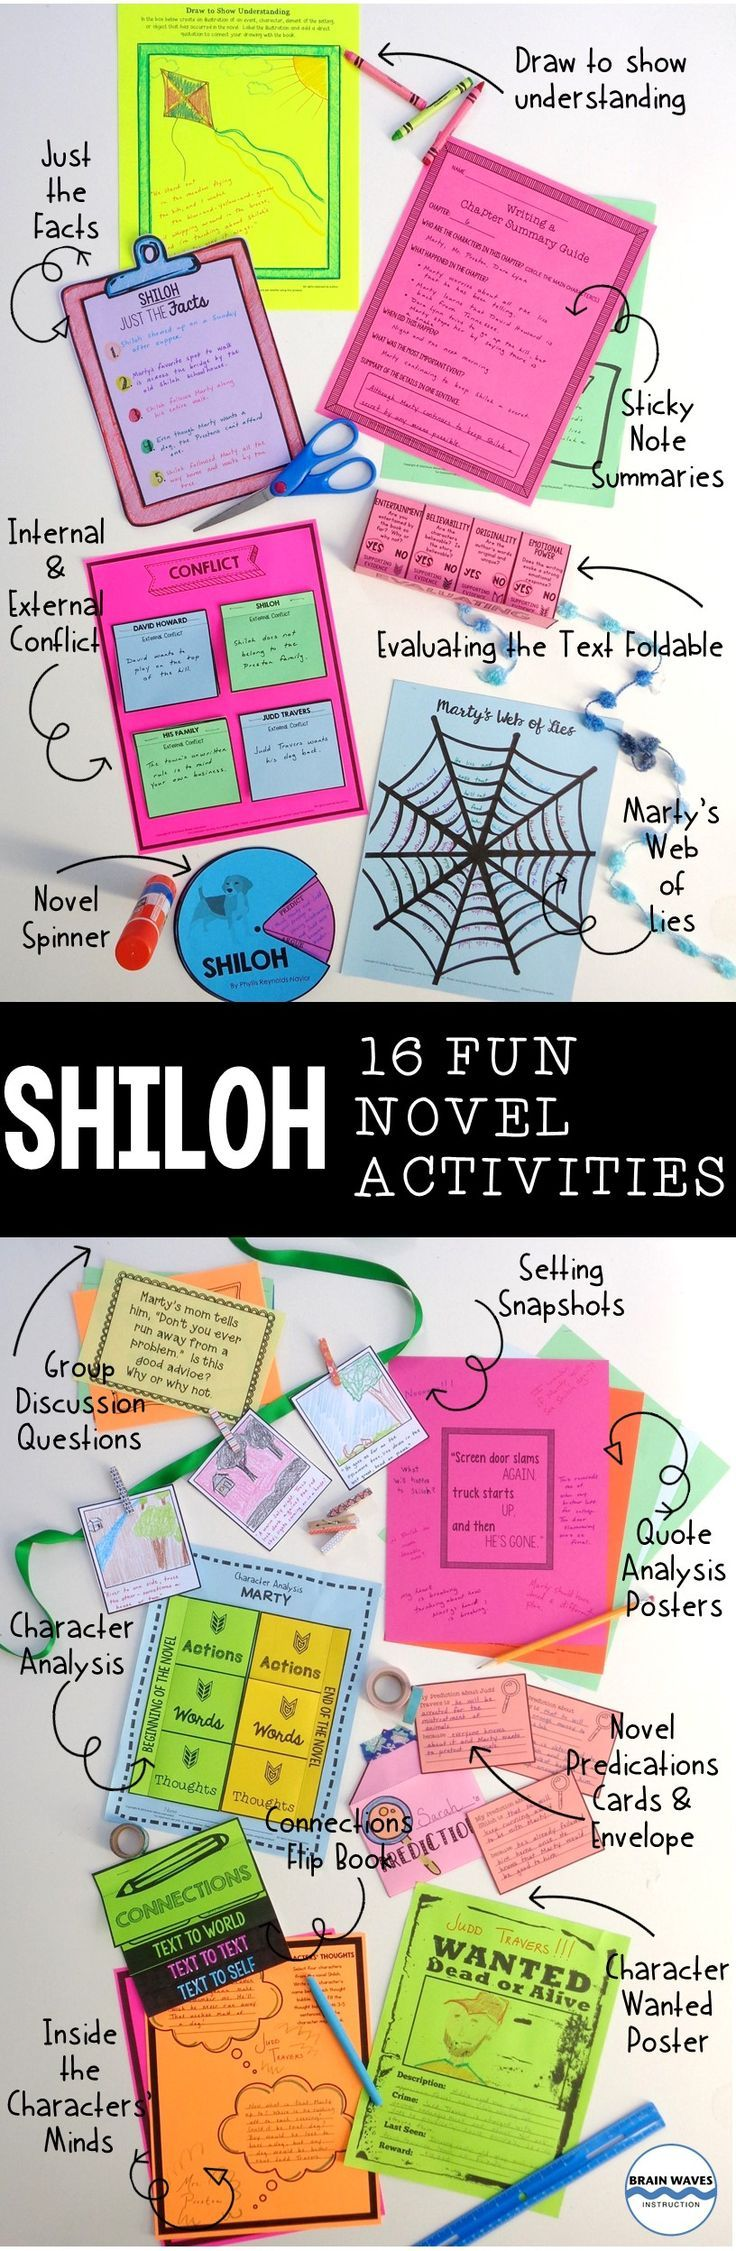 This super fun Shiloh novel study resource includes 16 chapter-by-chapter lessons and activities that will help students connect to, analyze, predict, investigate, synthesize, evaluate and comprehend the novel Shiloh.  It's designed to help students understand the novel more deeply and have fun while their doing it!